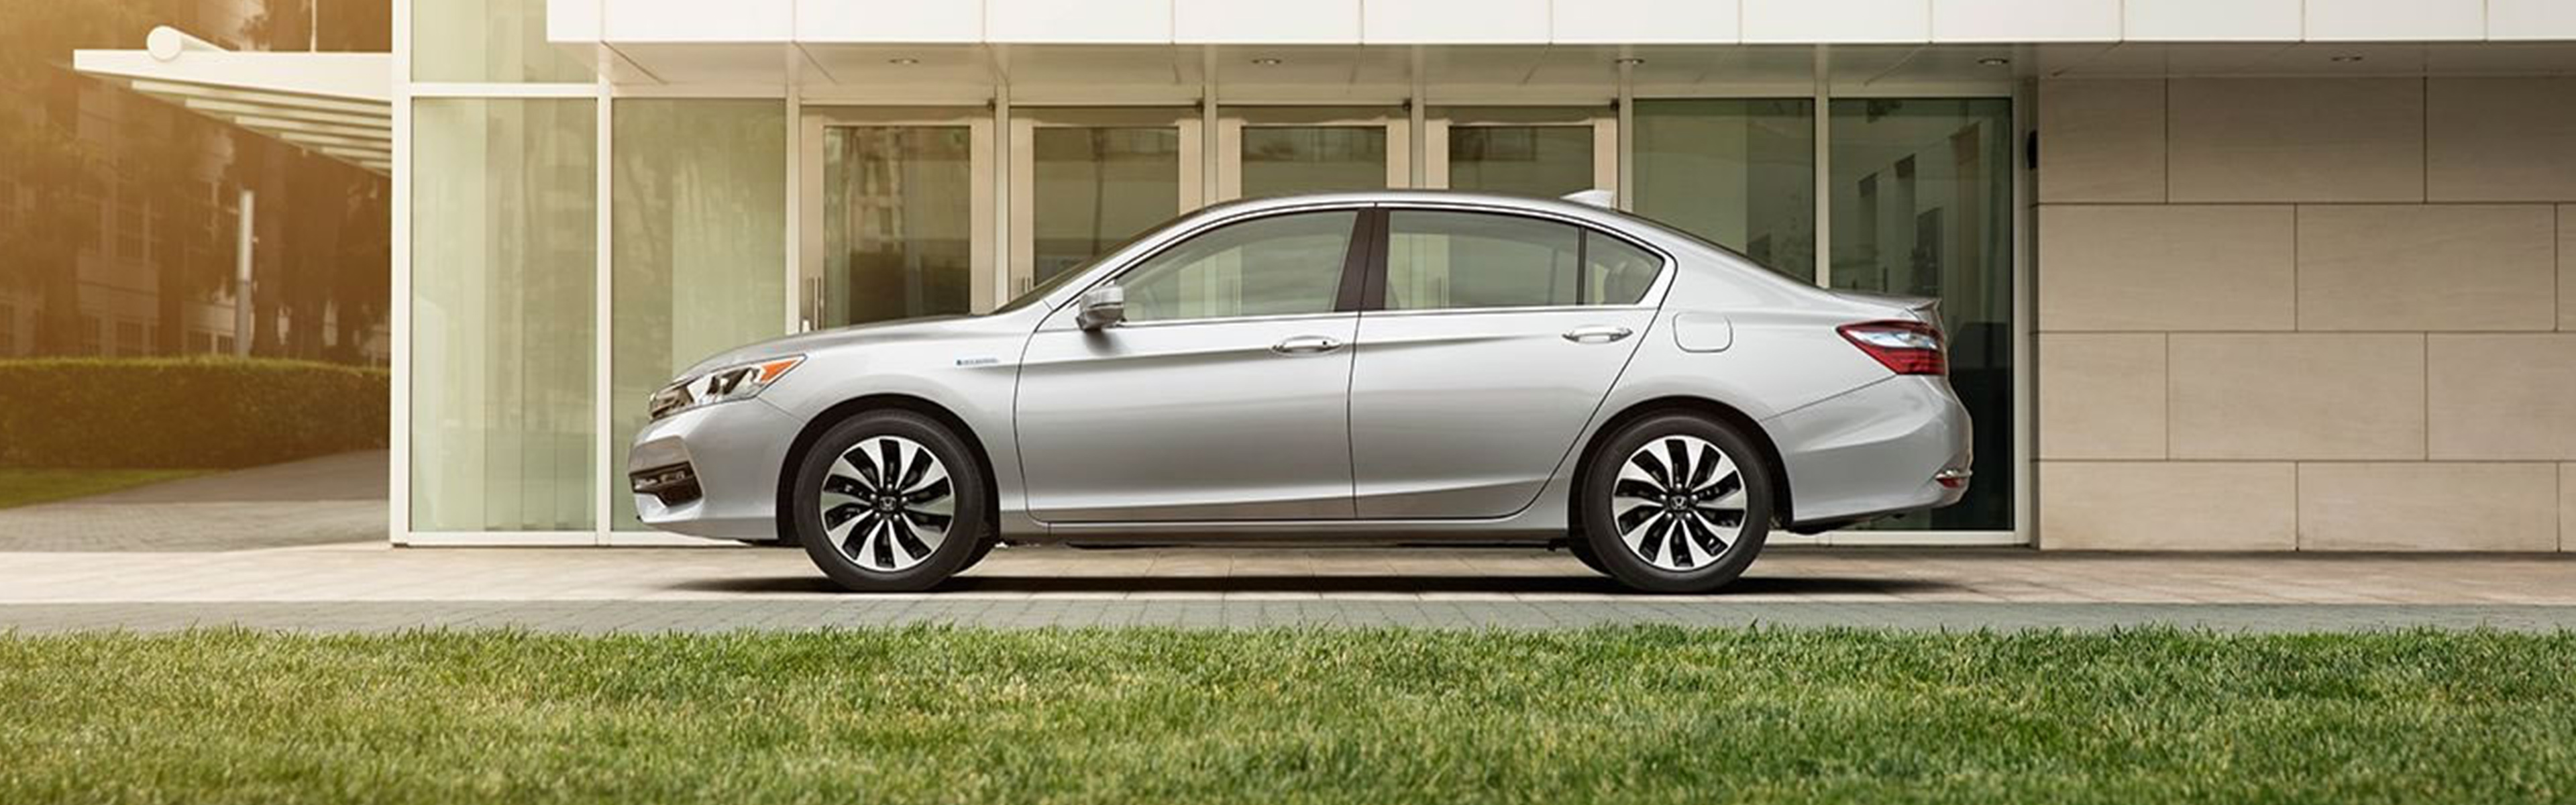 side view of honda accord hybrid